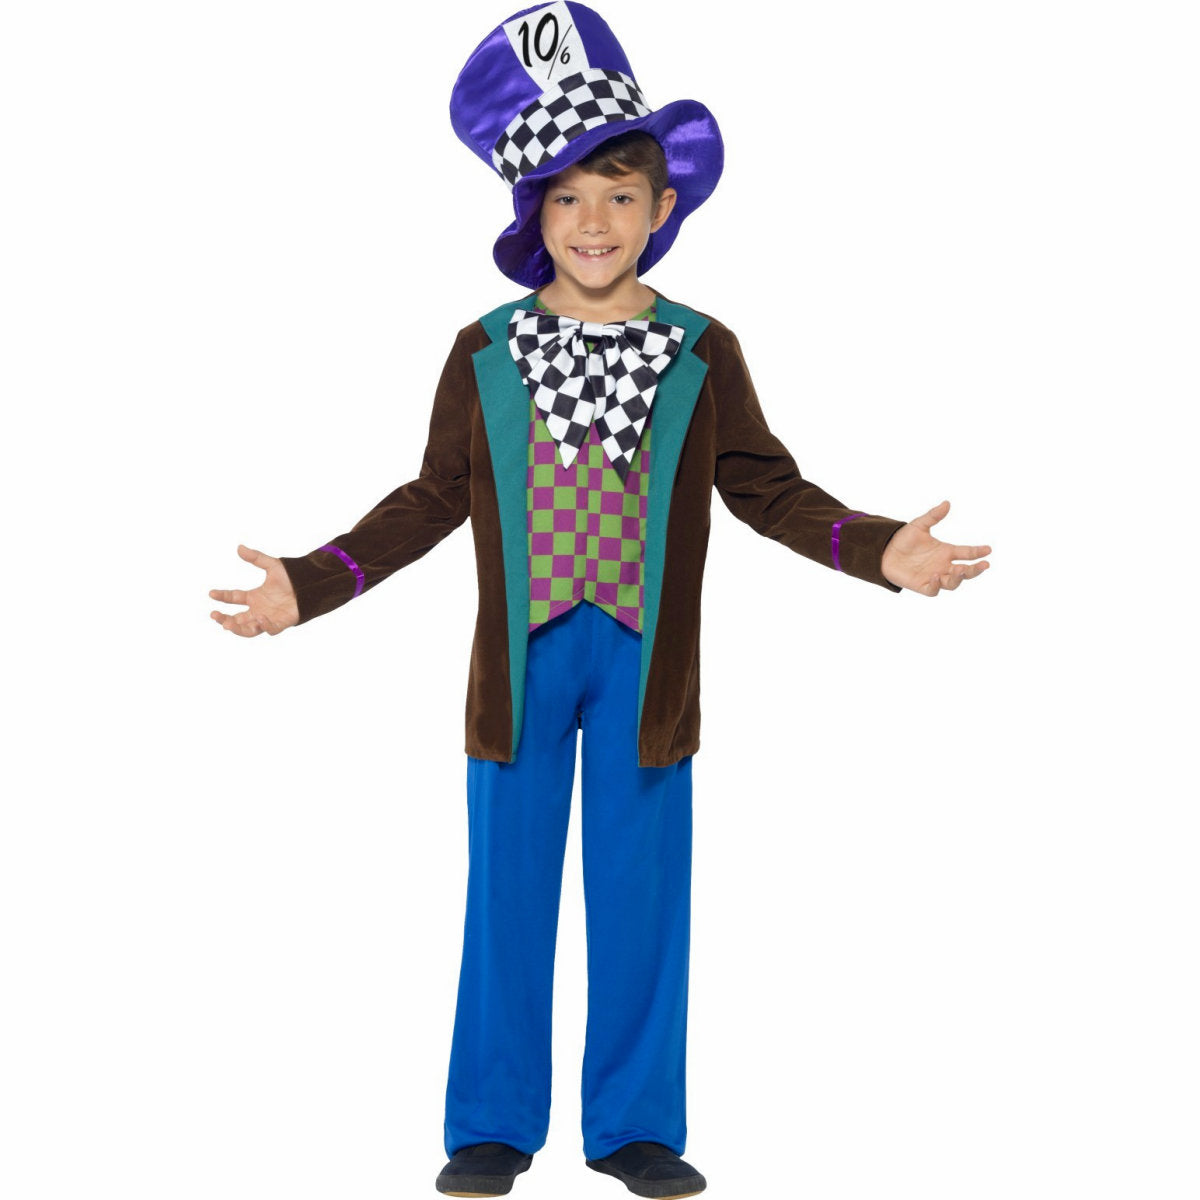 Deluxe Mad Hatter Boy's Children's Costume with Hat